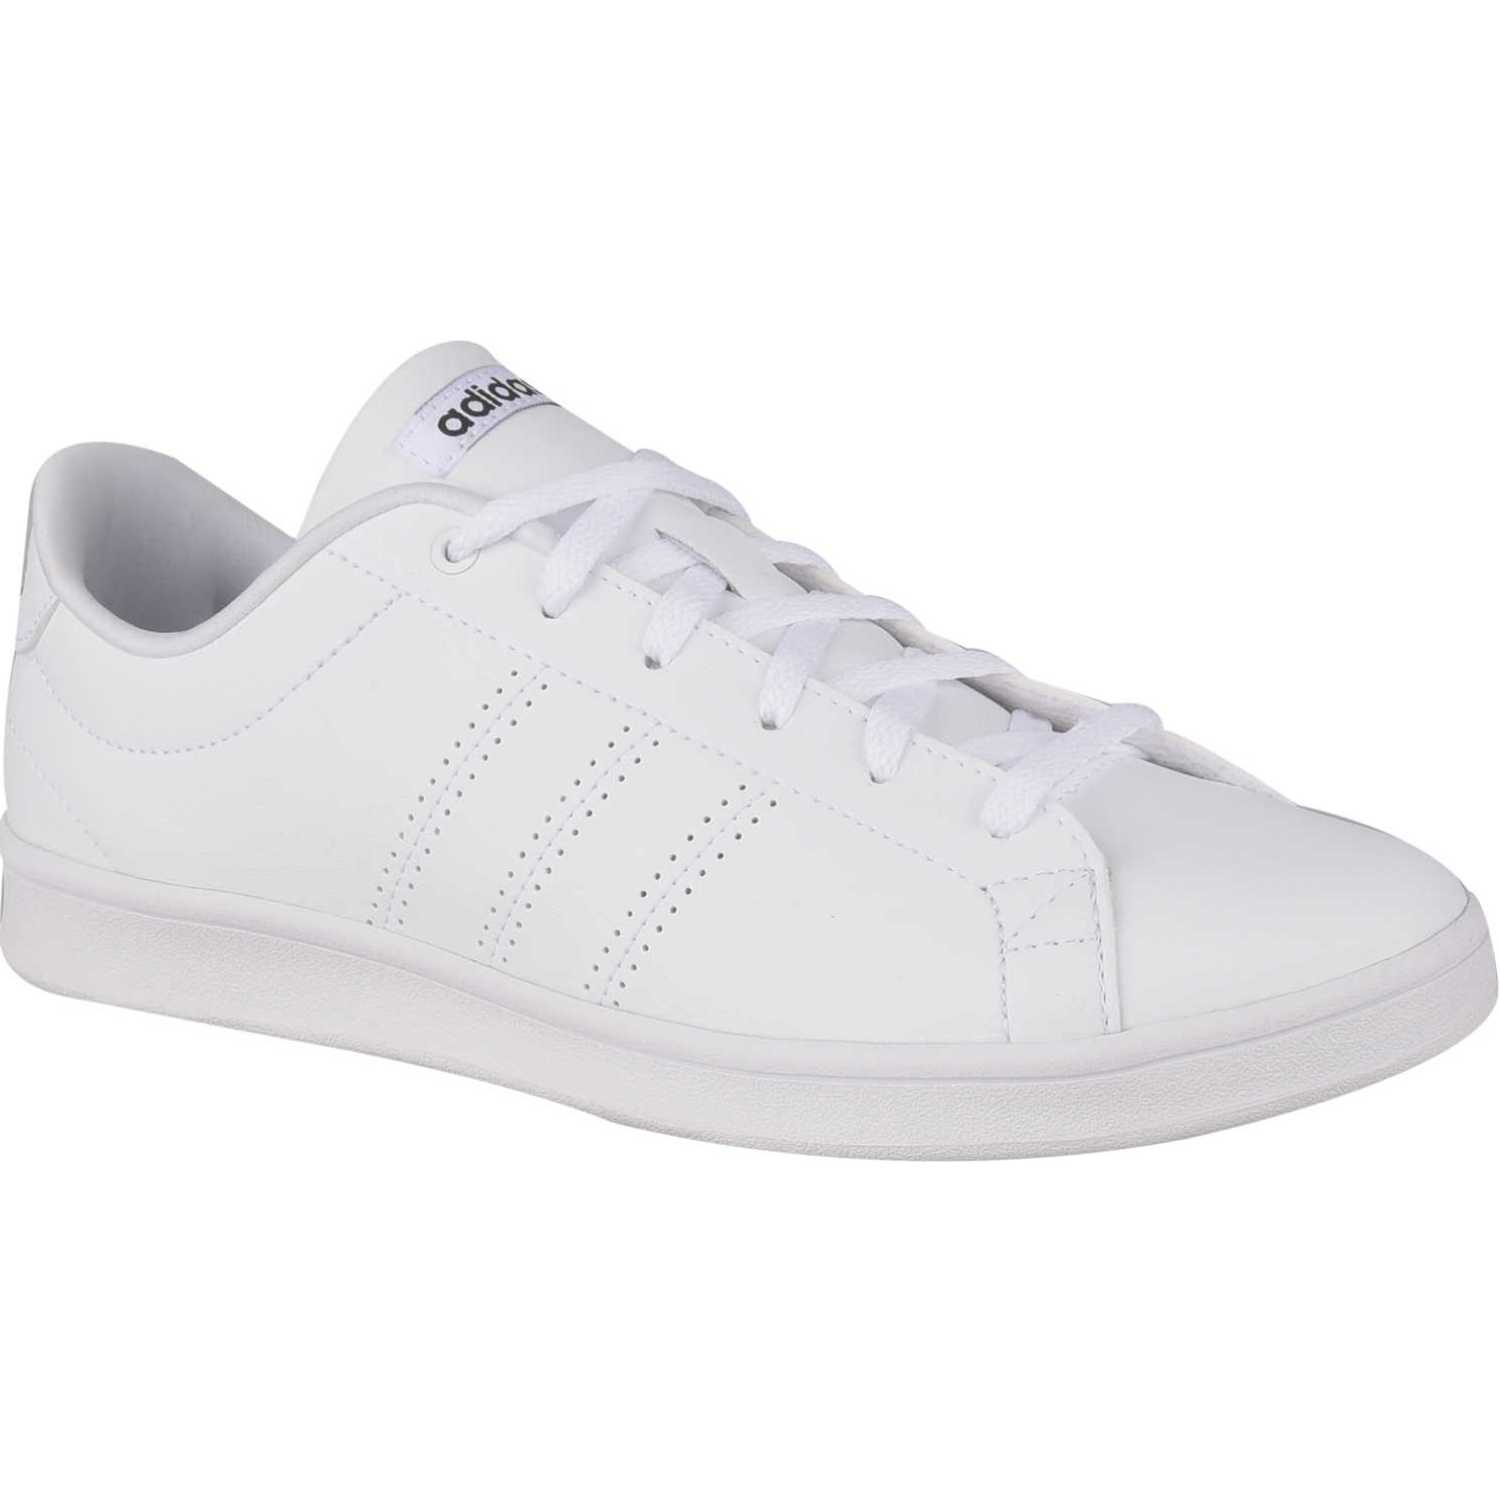 Adidas advantage clean qt Blanco Walking